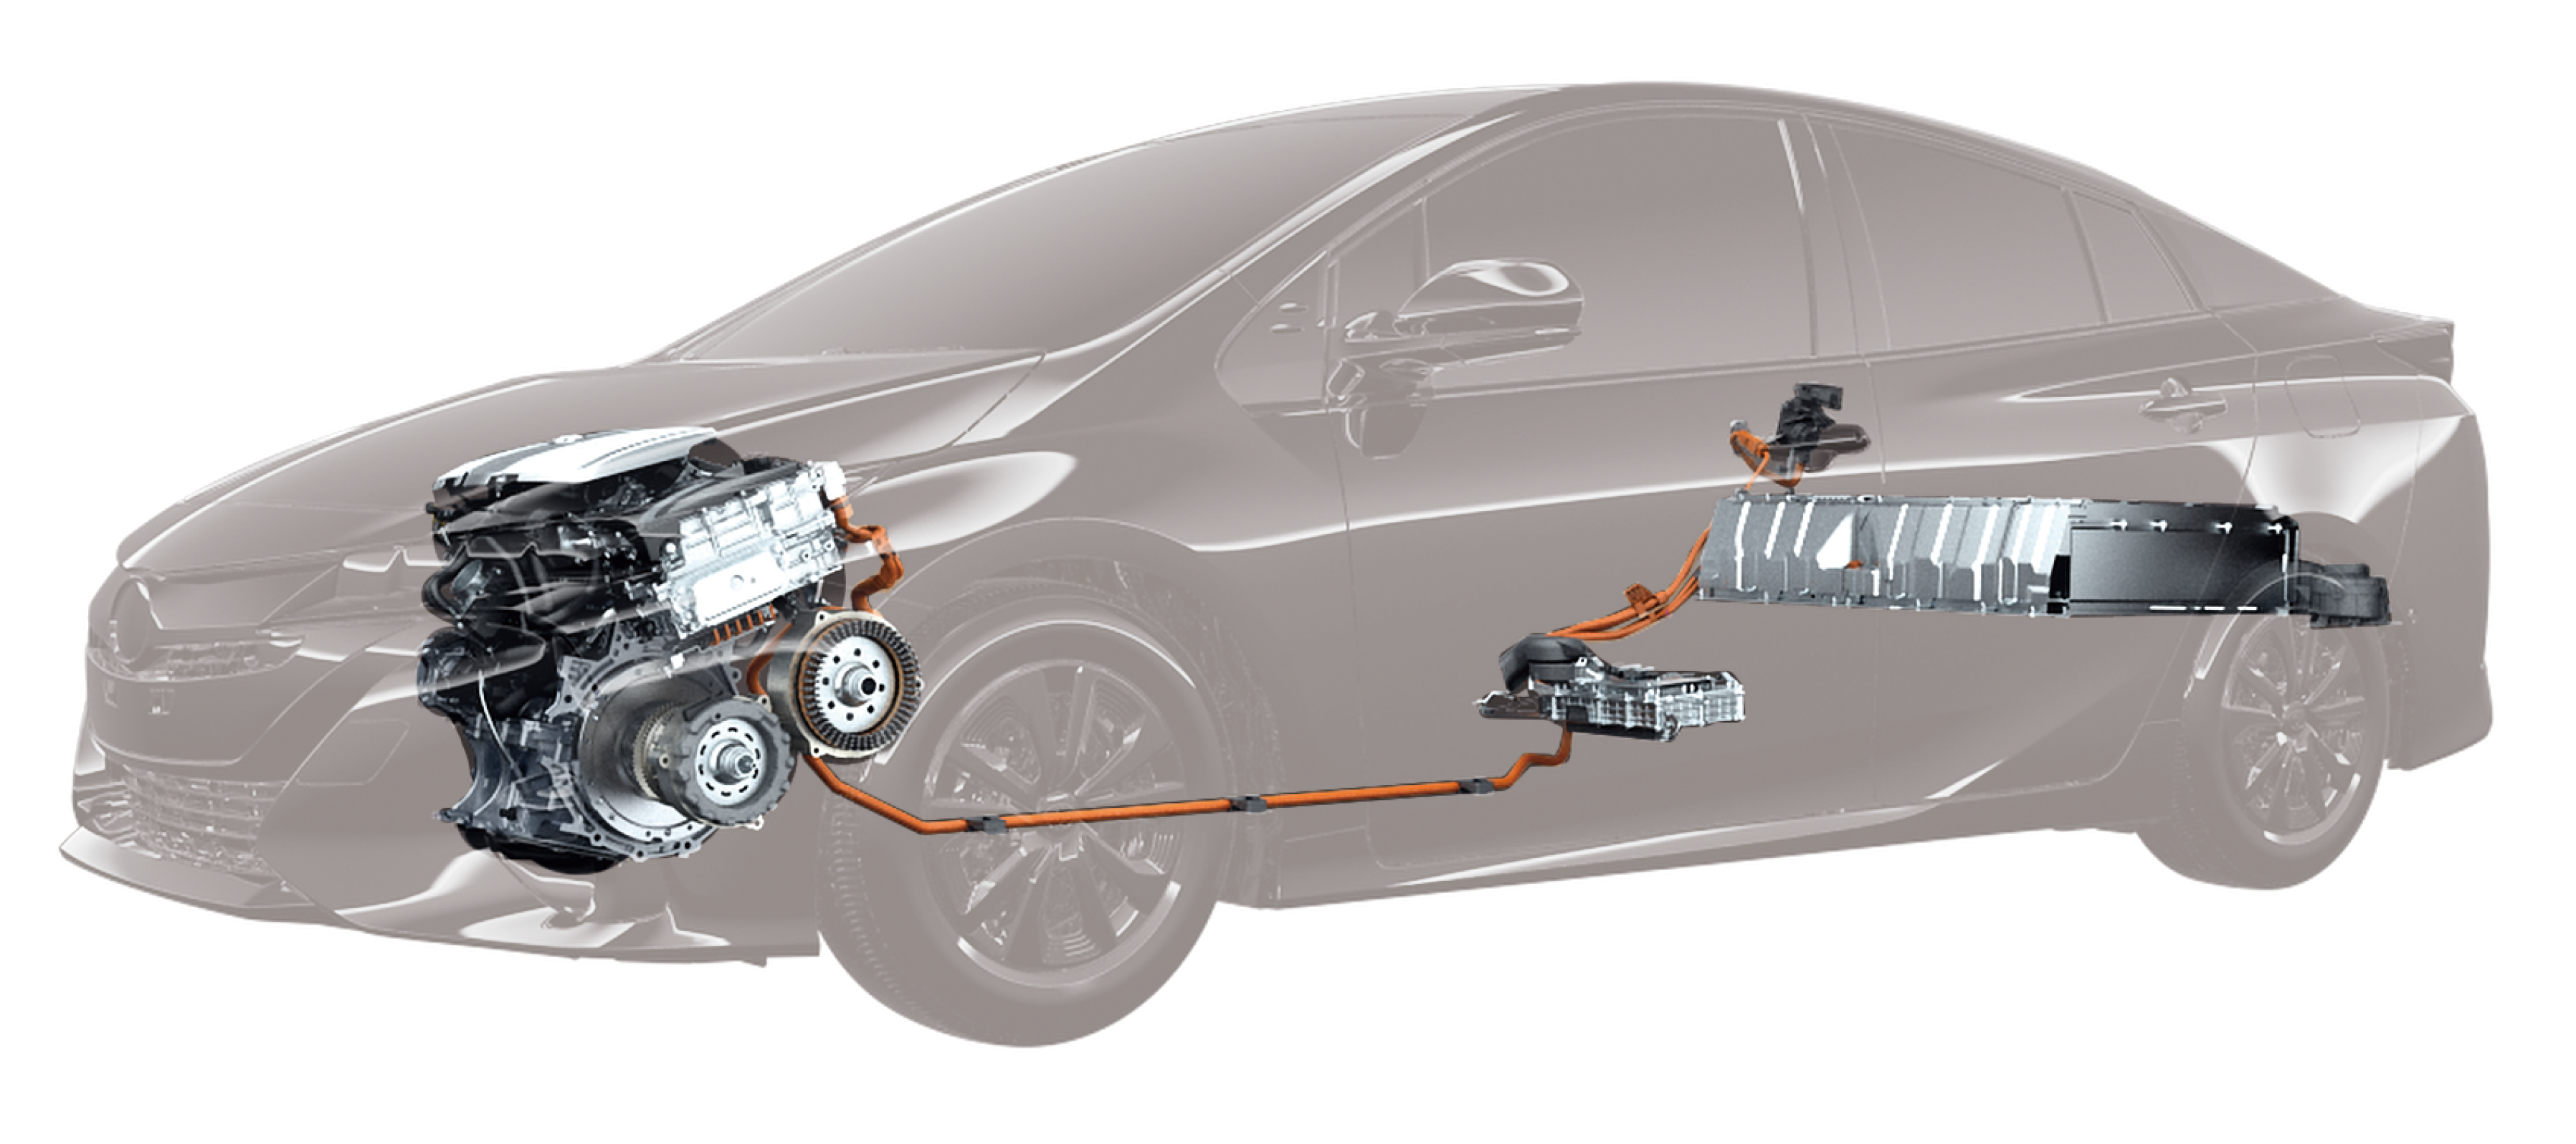 The system for plugin hybrid vehicles